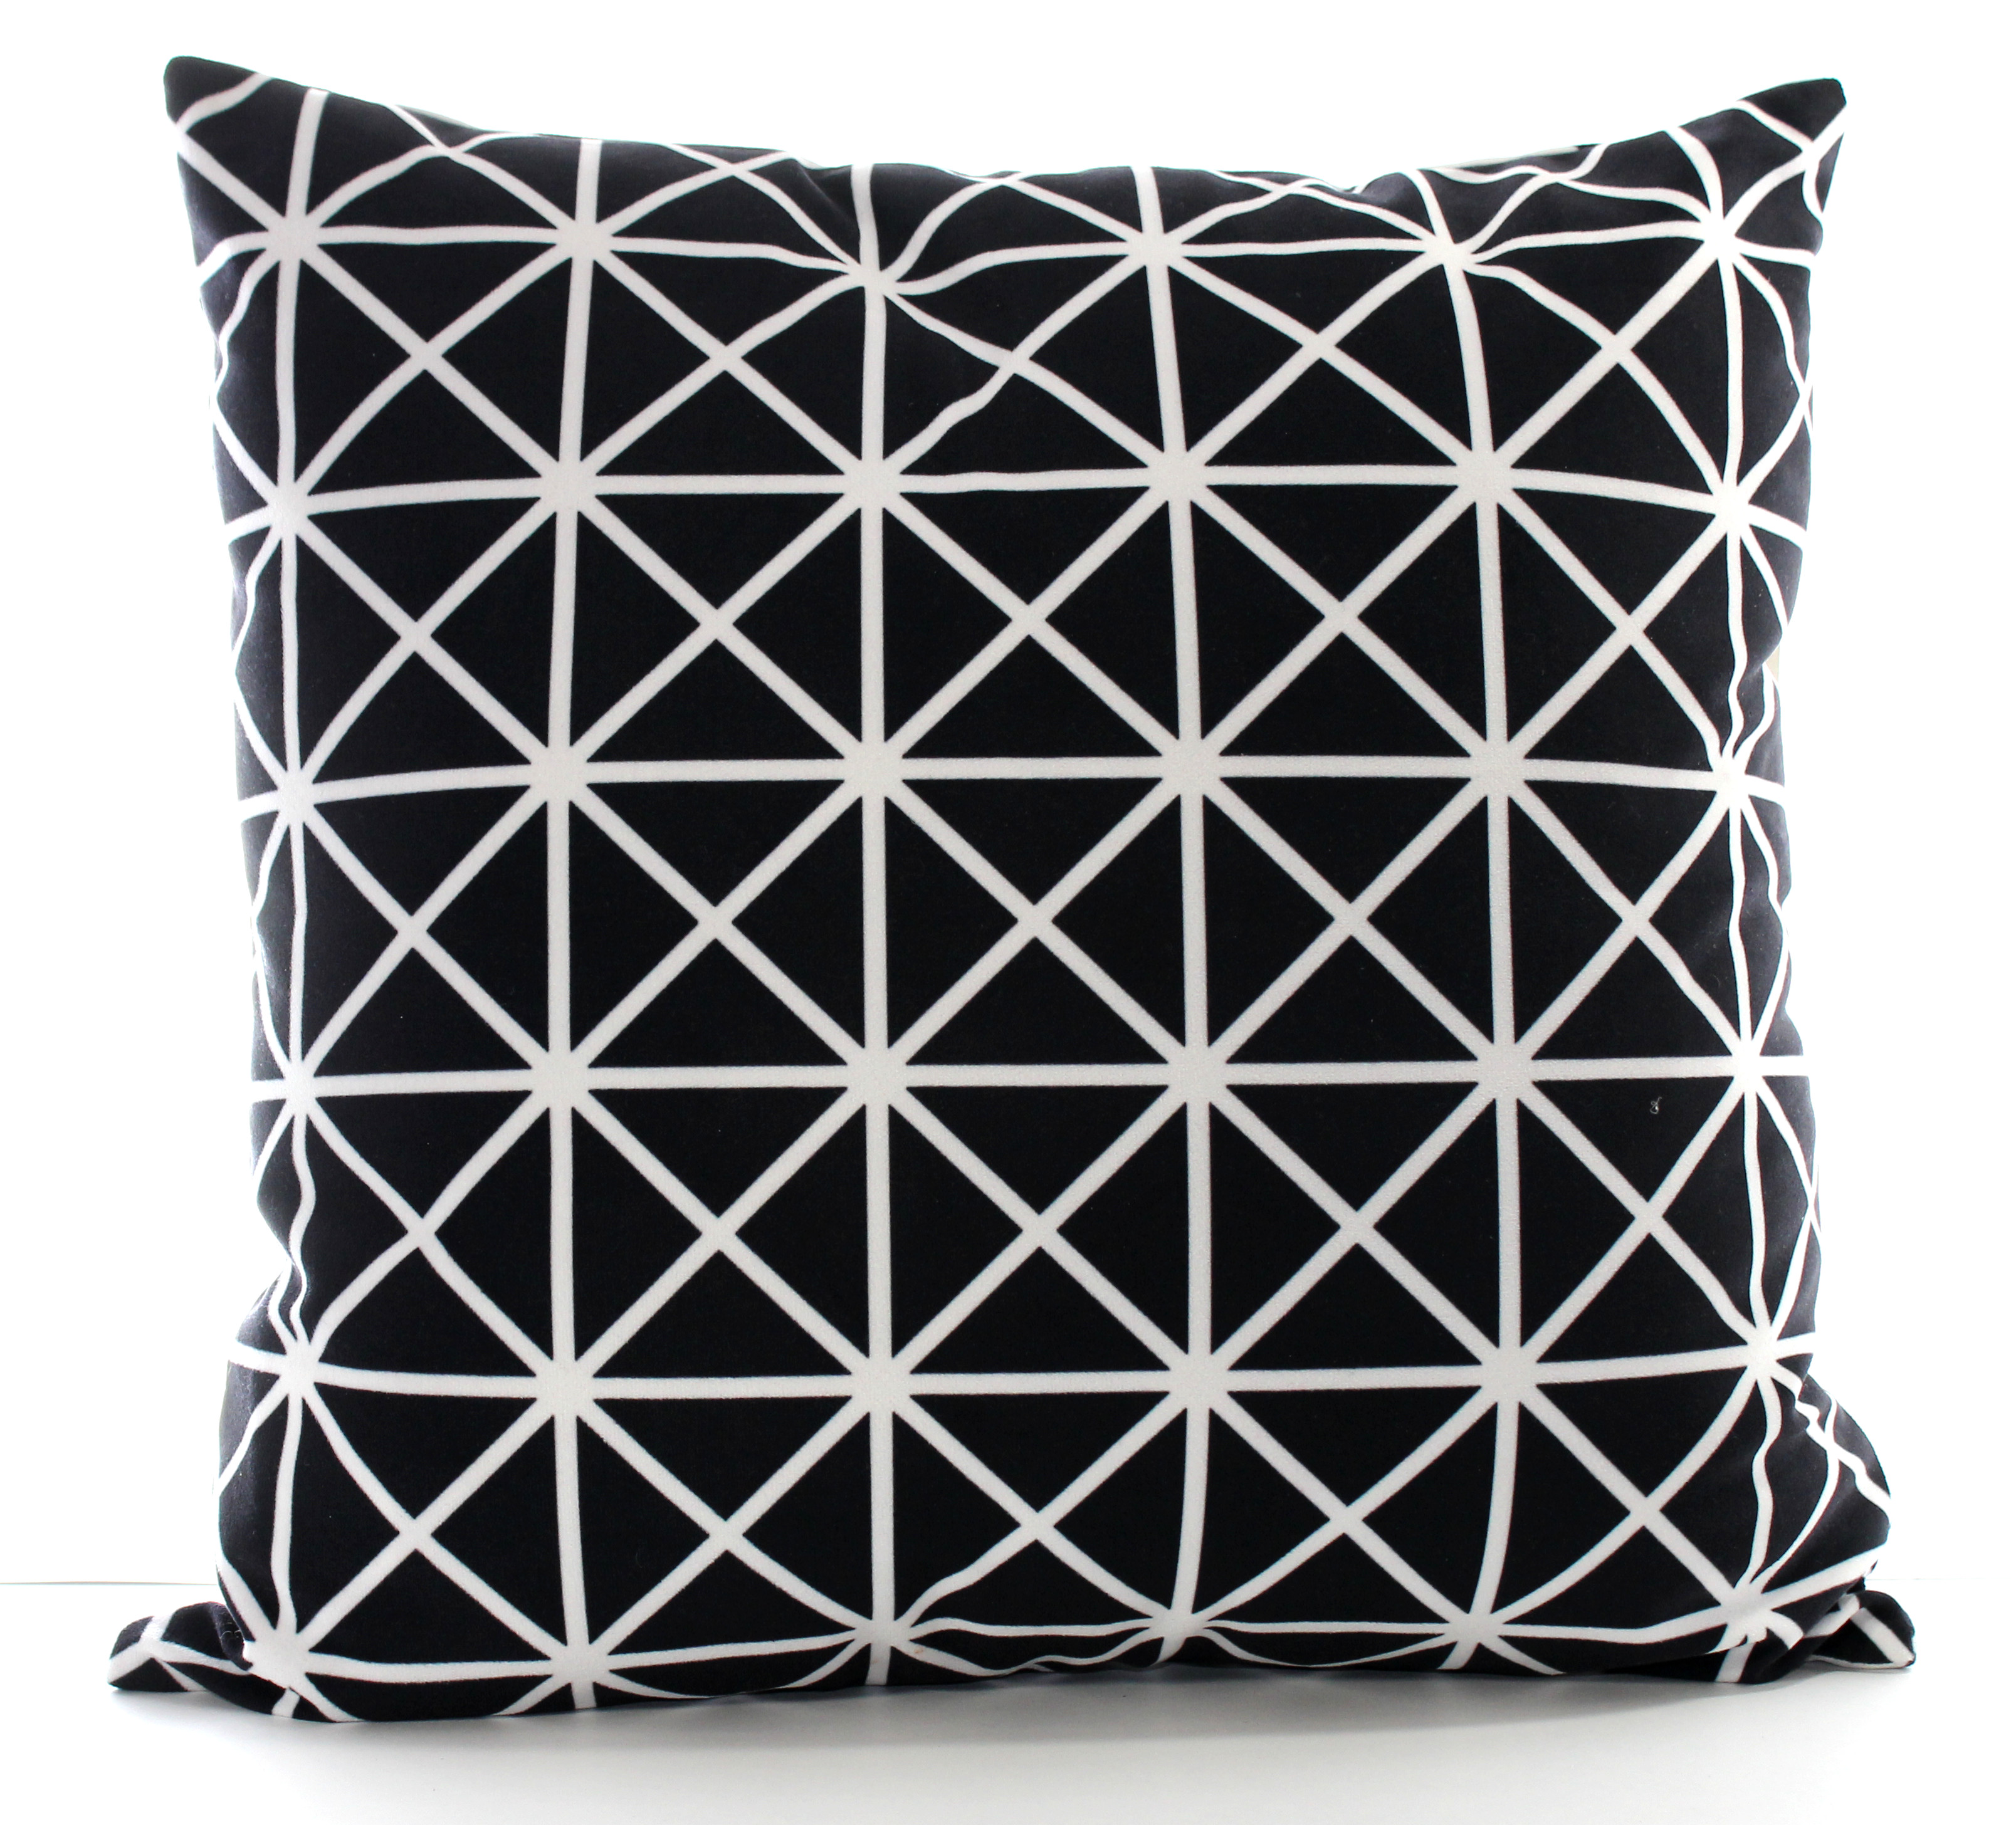 Pure Black and White Cushion Cover Set of 2  P31 maison